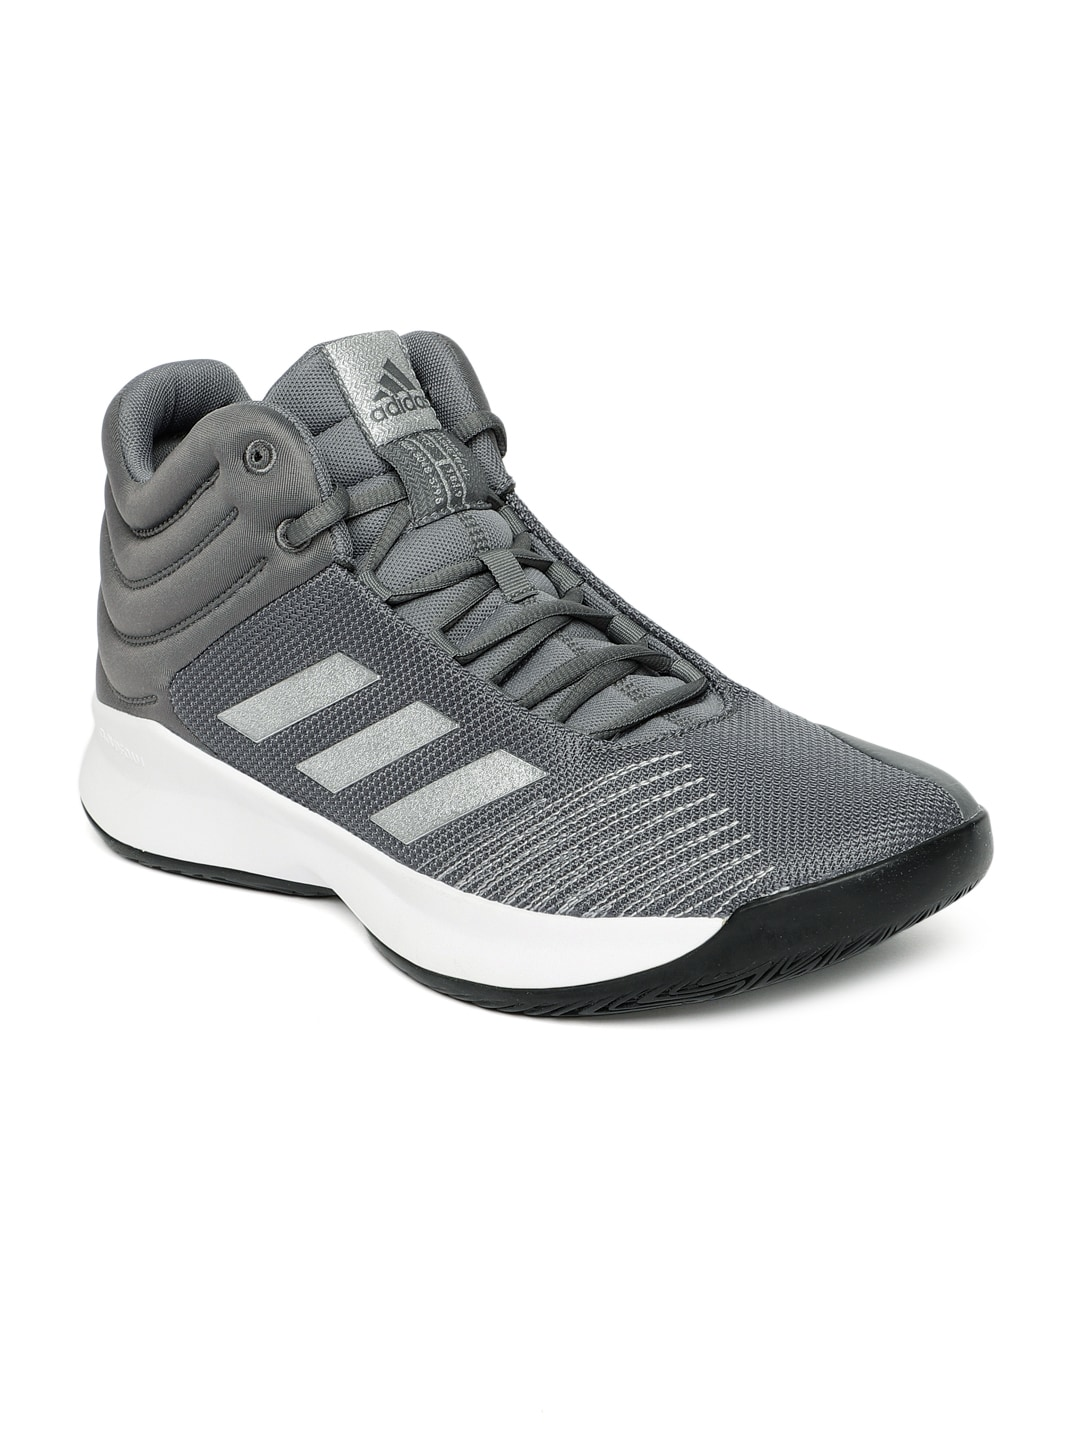 d97b340f39619 Adidas Basketball Shoes